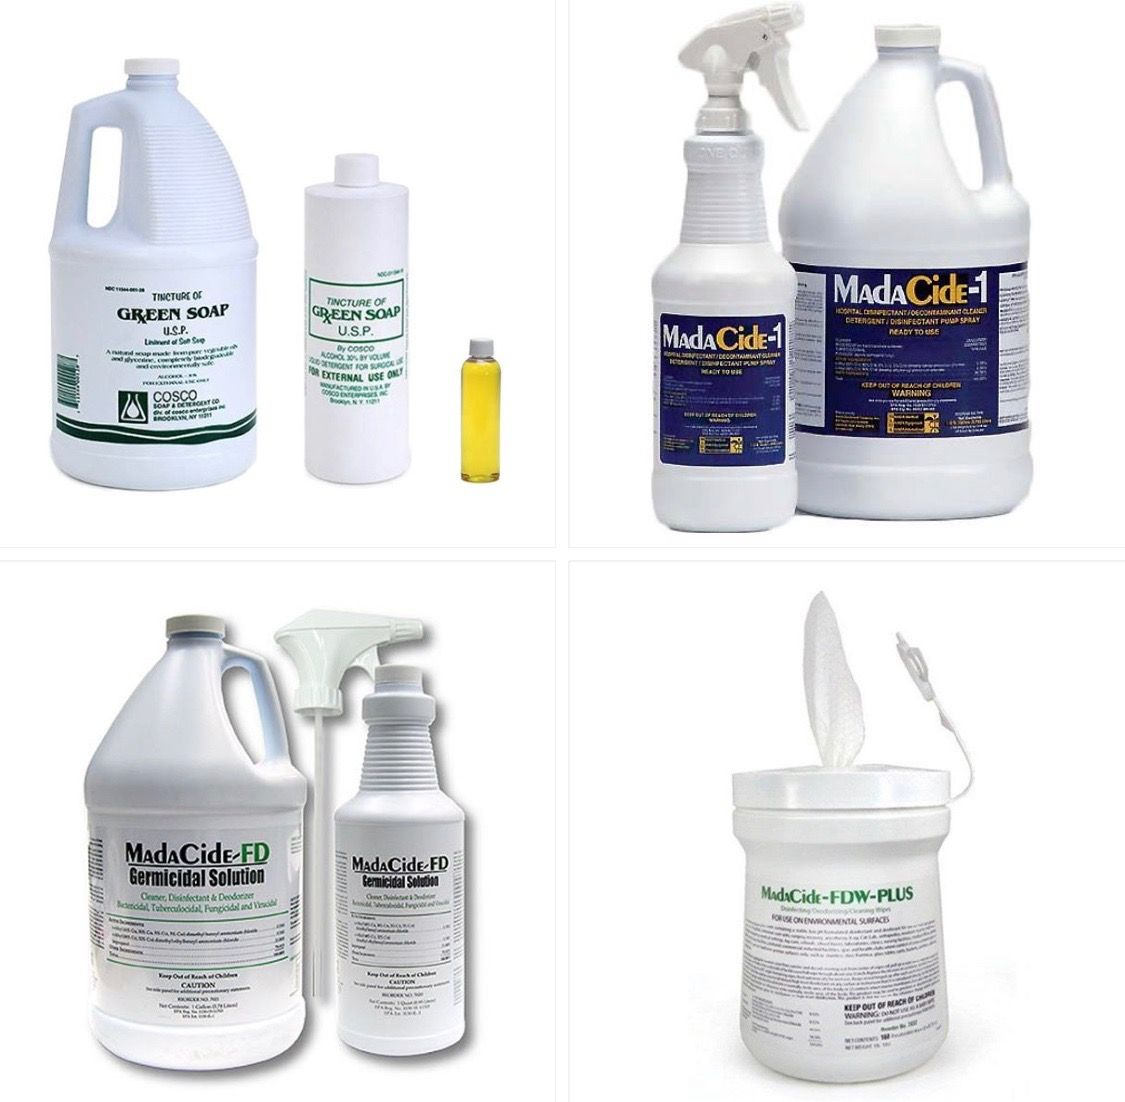 Madacide Madacide Fd Green Soap All You Disinfectants Many Options And Sizes At Needlejig Tattoo Supply Tattoo Equipment Tattoo Supplies Life Tattoos